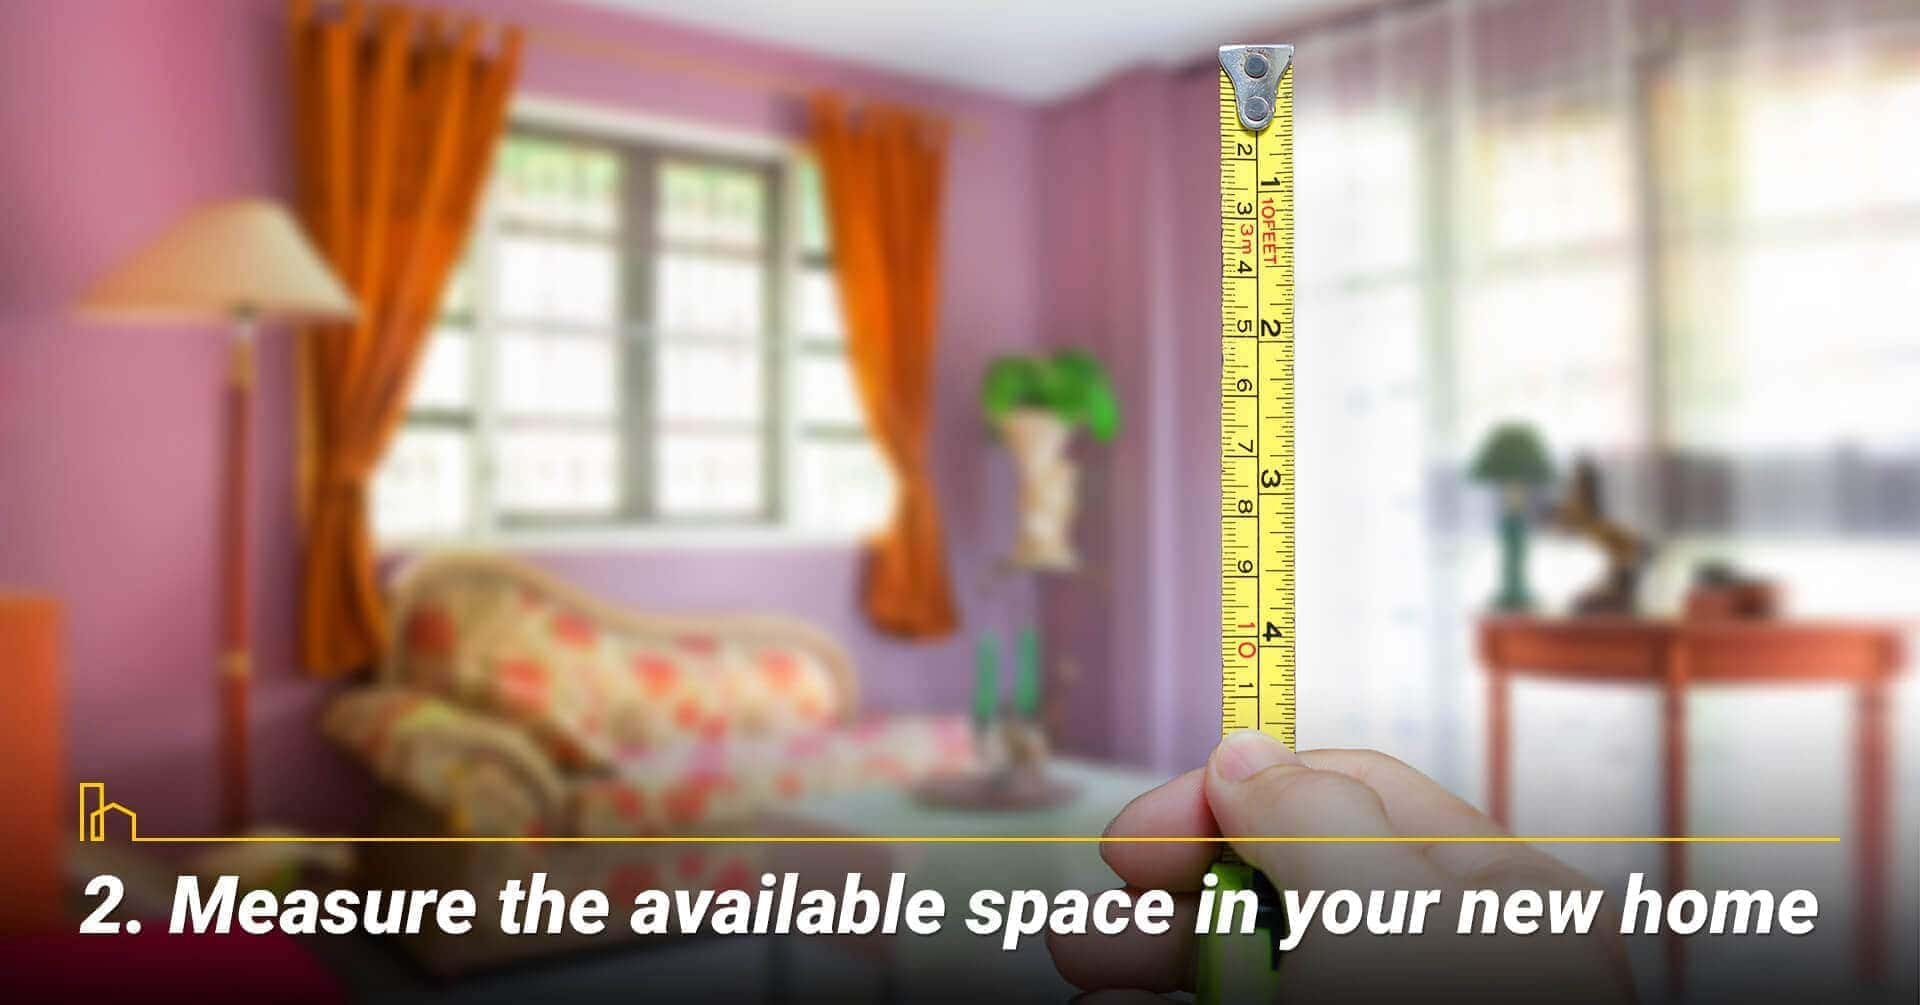 Measure the available space in your new home